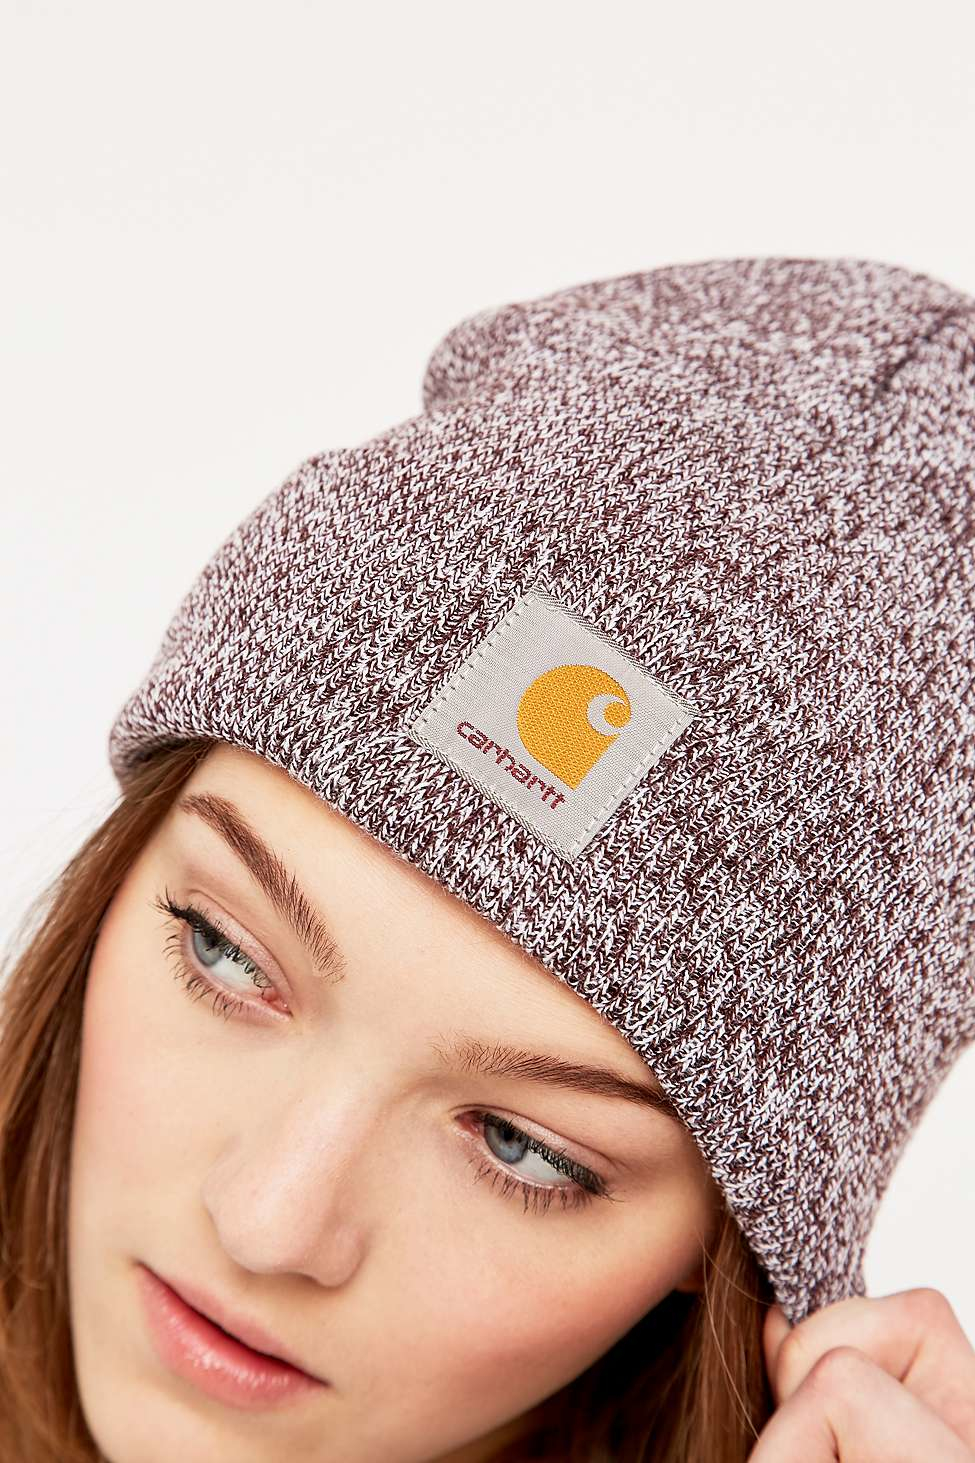 ef156e466ab4a Carhartt Damson And White Scott Watch Hat in Gray - Lyst